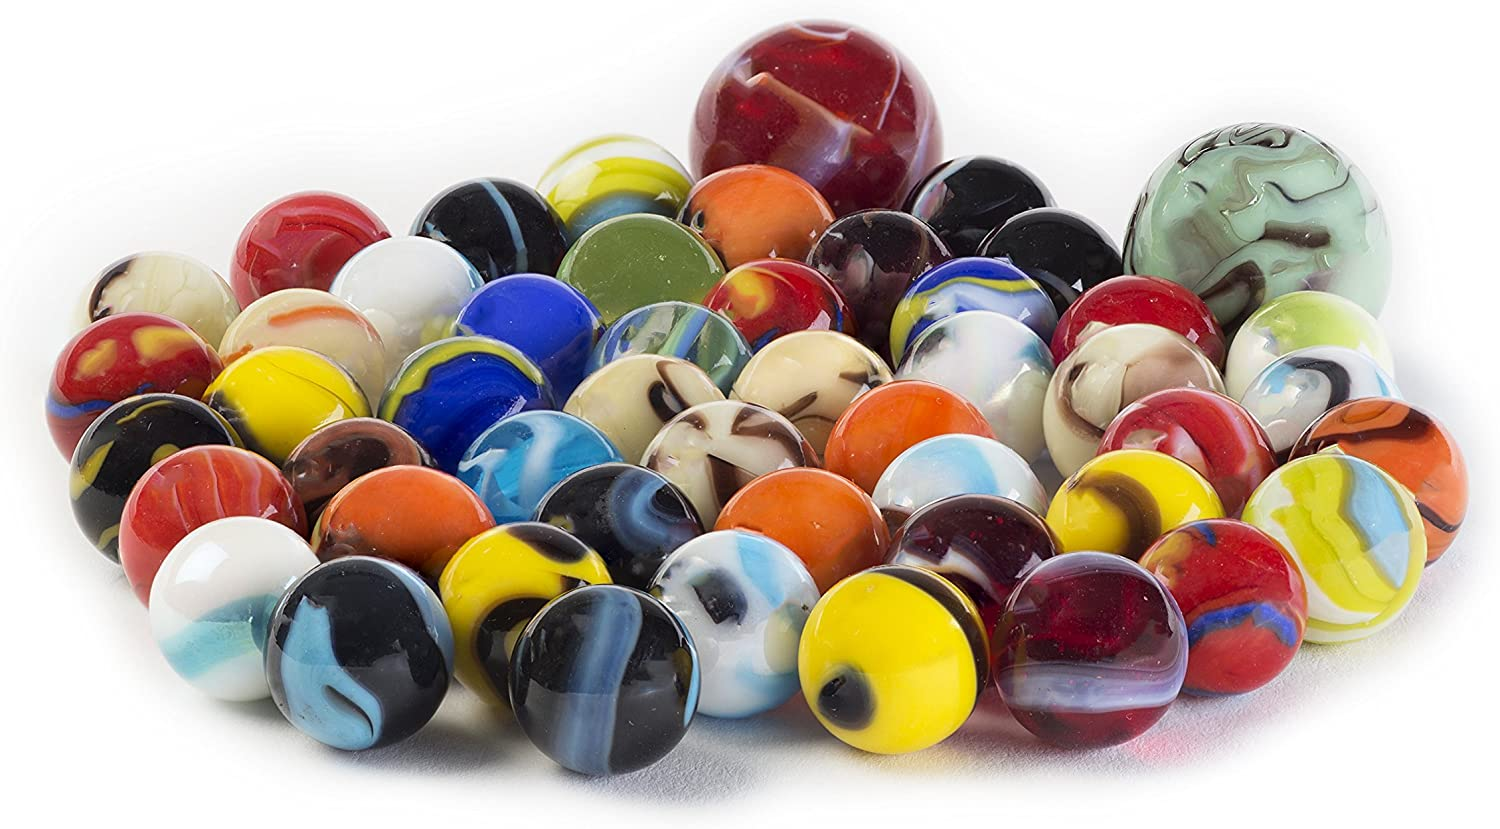 Glass Marbles Bulk, Set OF 50, (48 Players and 2 Shooters) Assorted Colors, Styles, and Finishes. with Game Marbles Rules.